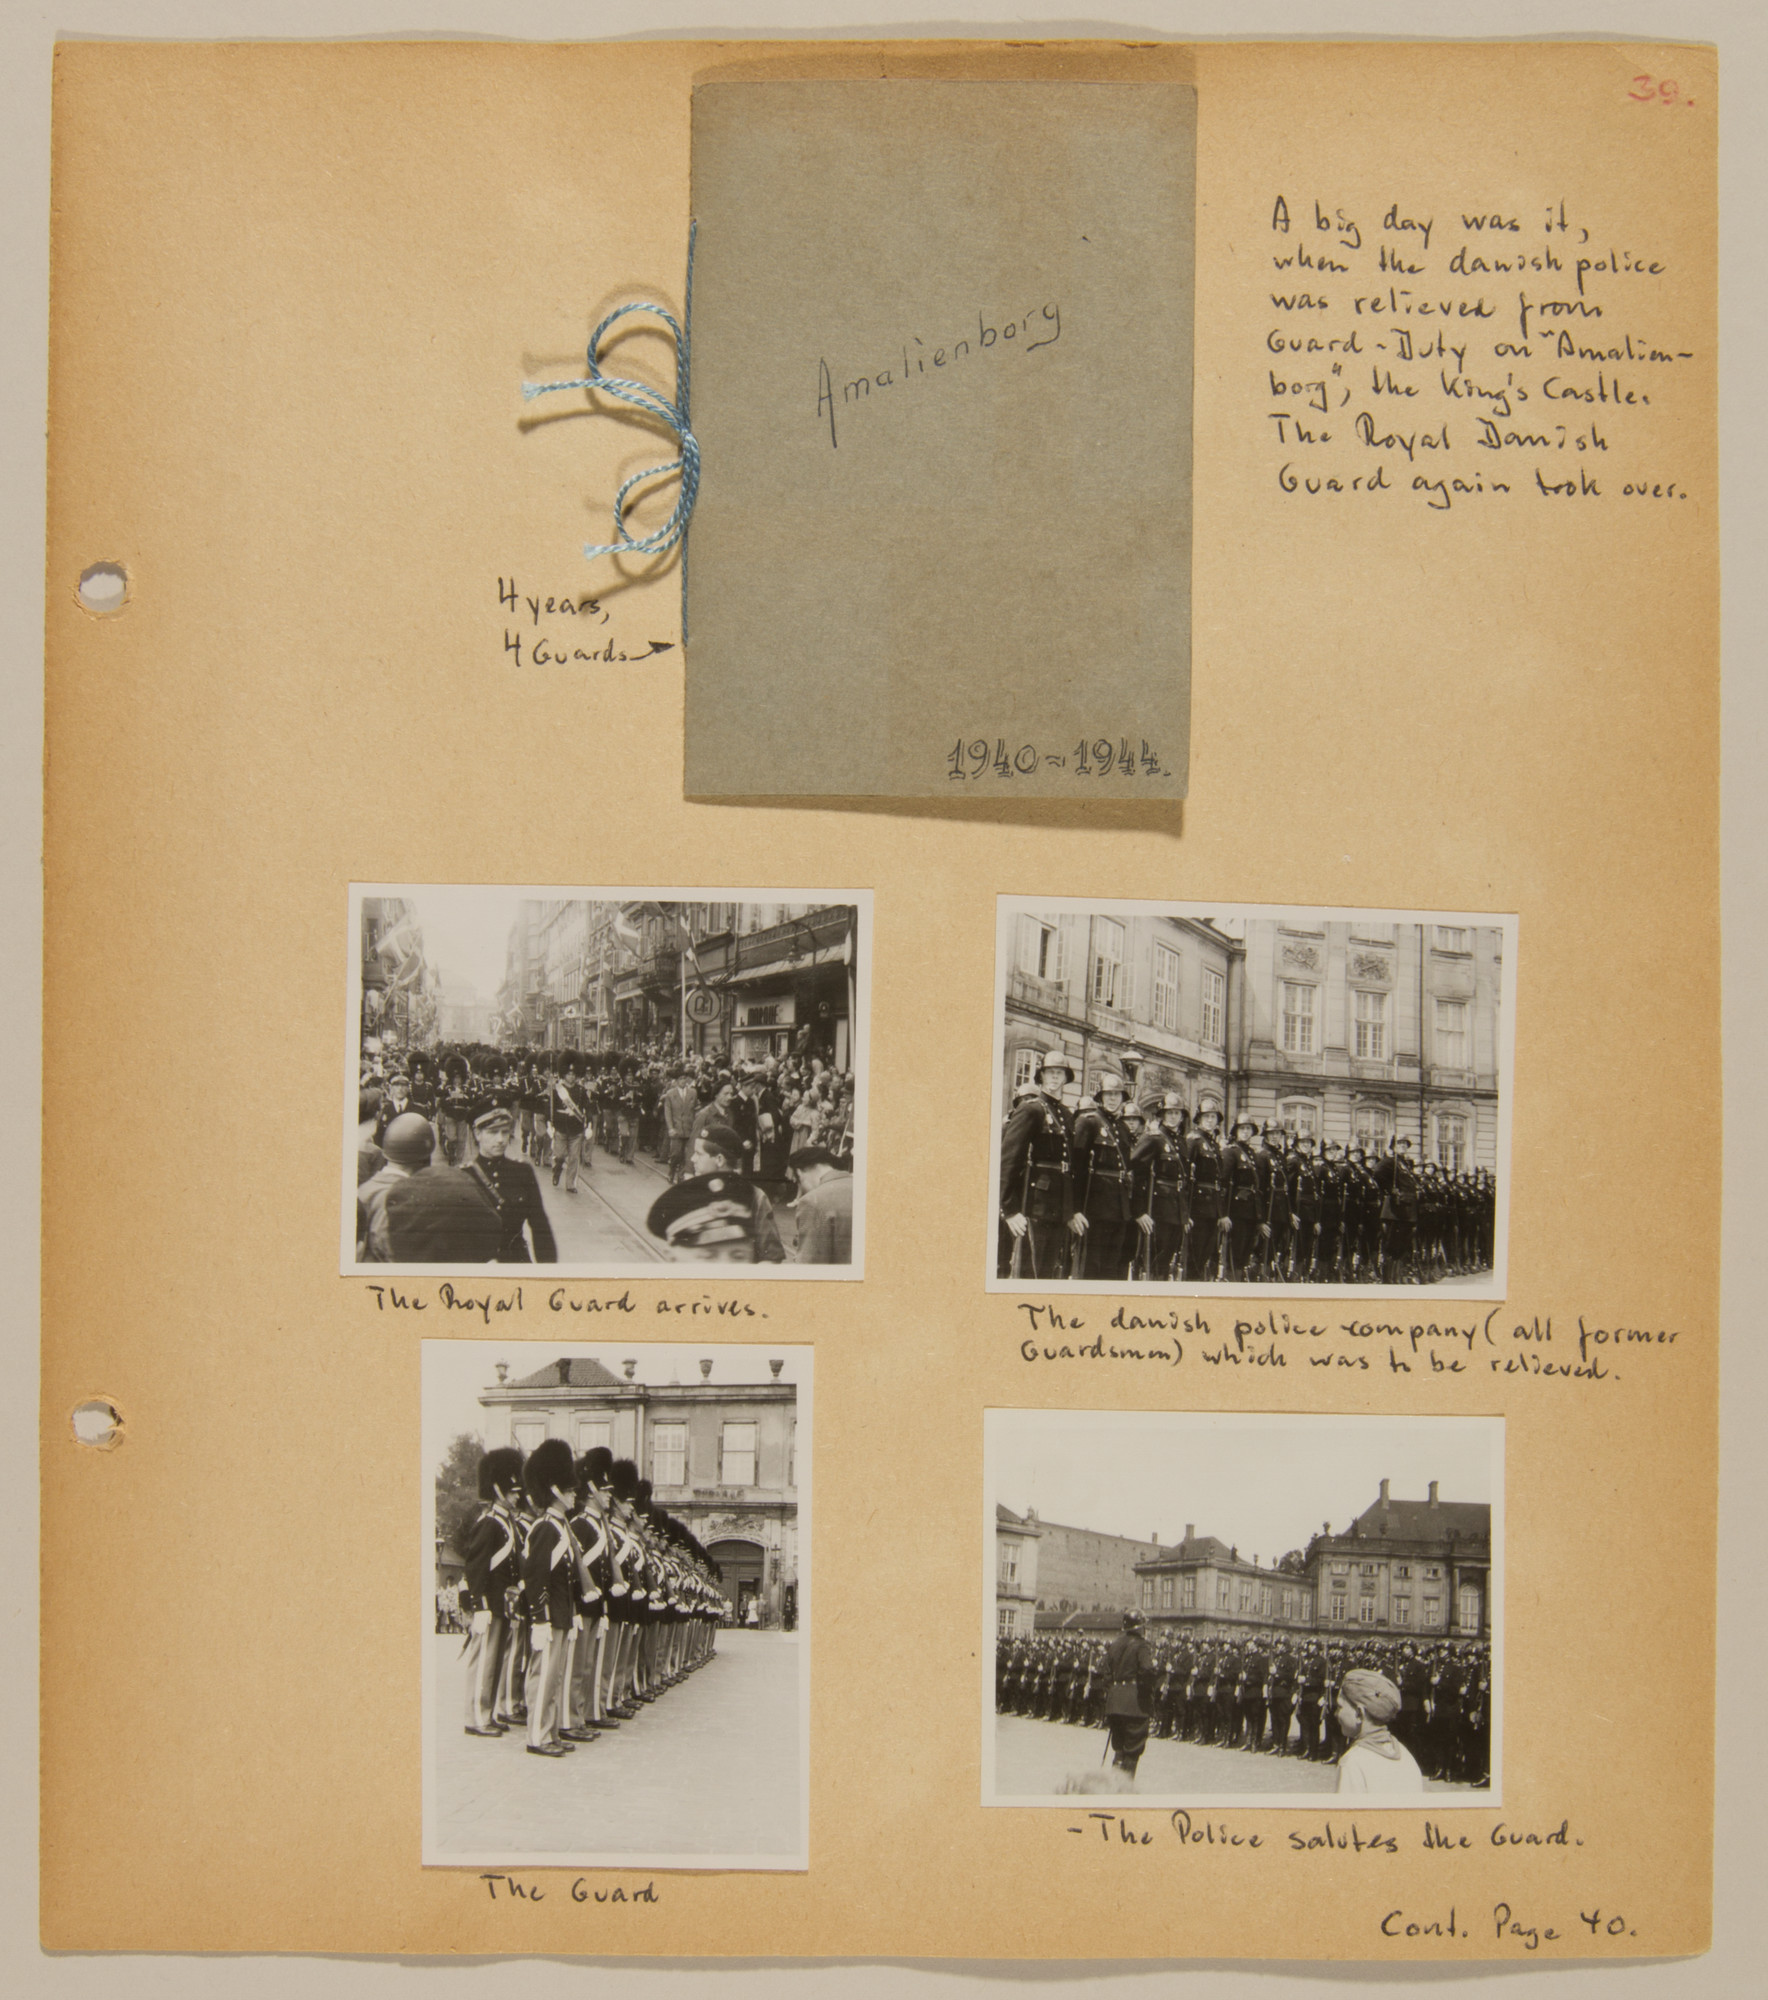 Final page from volume five of a set of scrapbooks compiled by Bjorn Sibbern, a Danish policeman and resistance member, documenting the German occupation of Denmark.  The last page of the scrapbooks contain photographs of the return of the Royal Guard to the King's Castle.